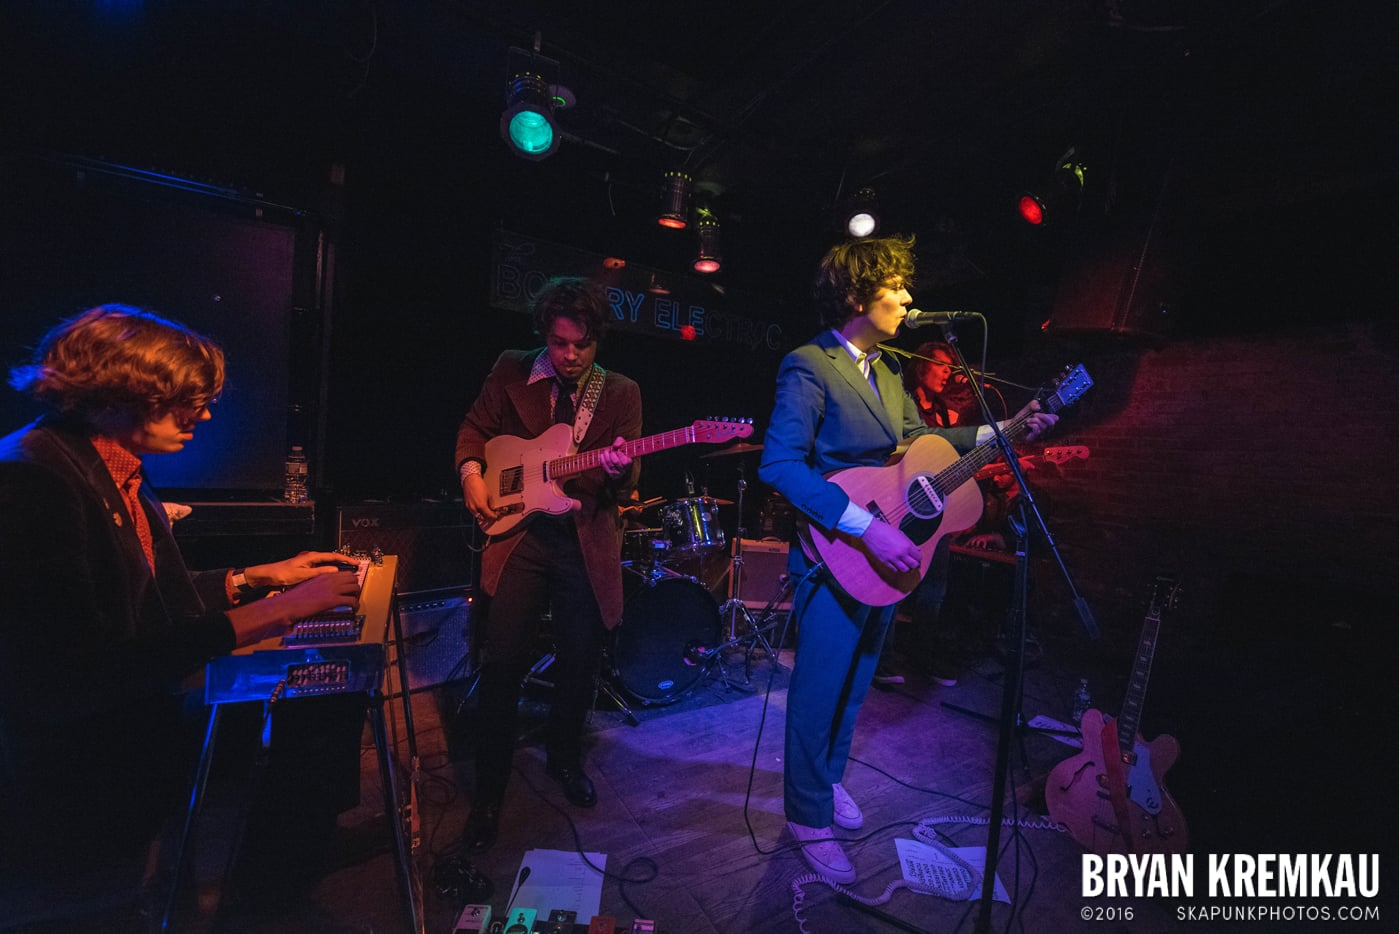 Trapper Schoepp & The Shades @ Bowery Electric, NYC - 11.20.14 (45)